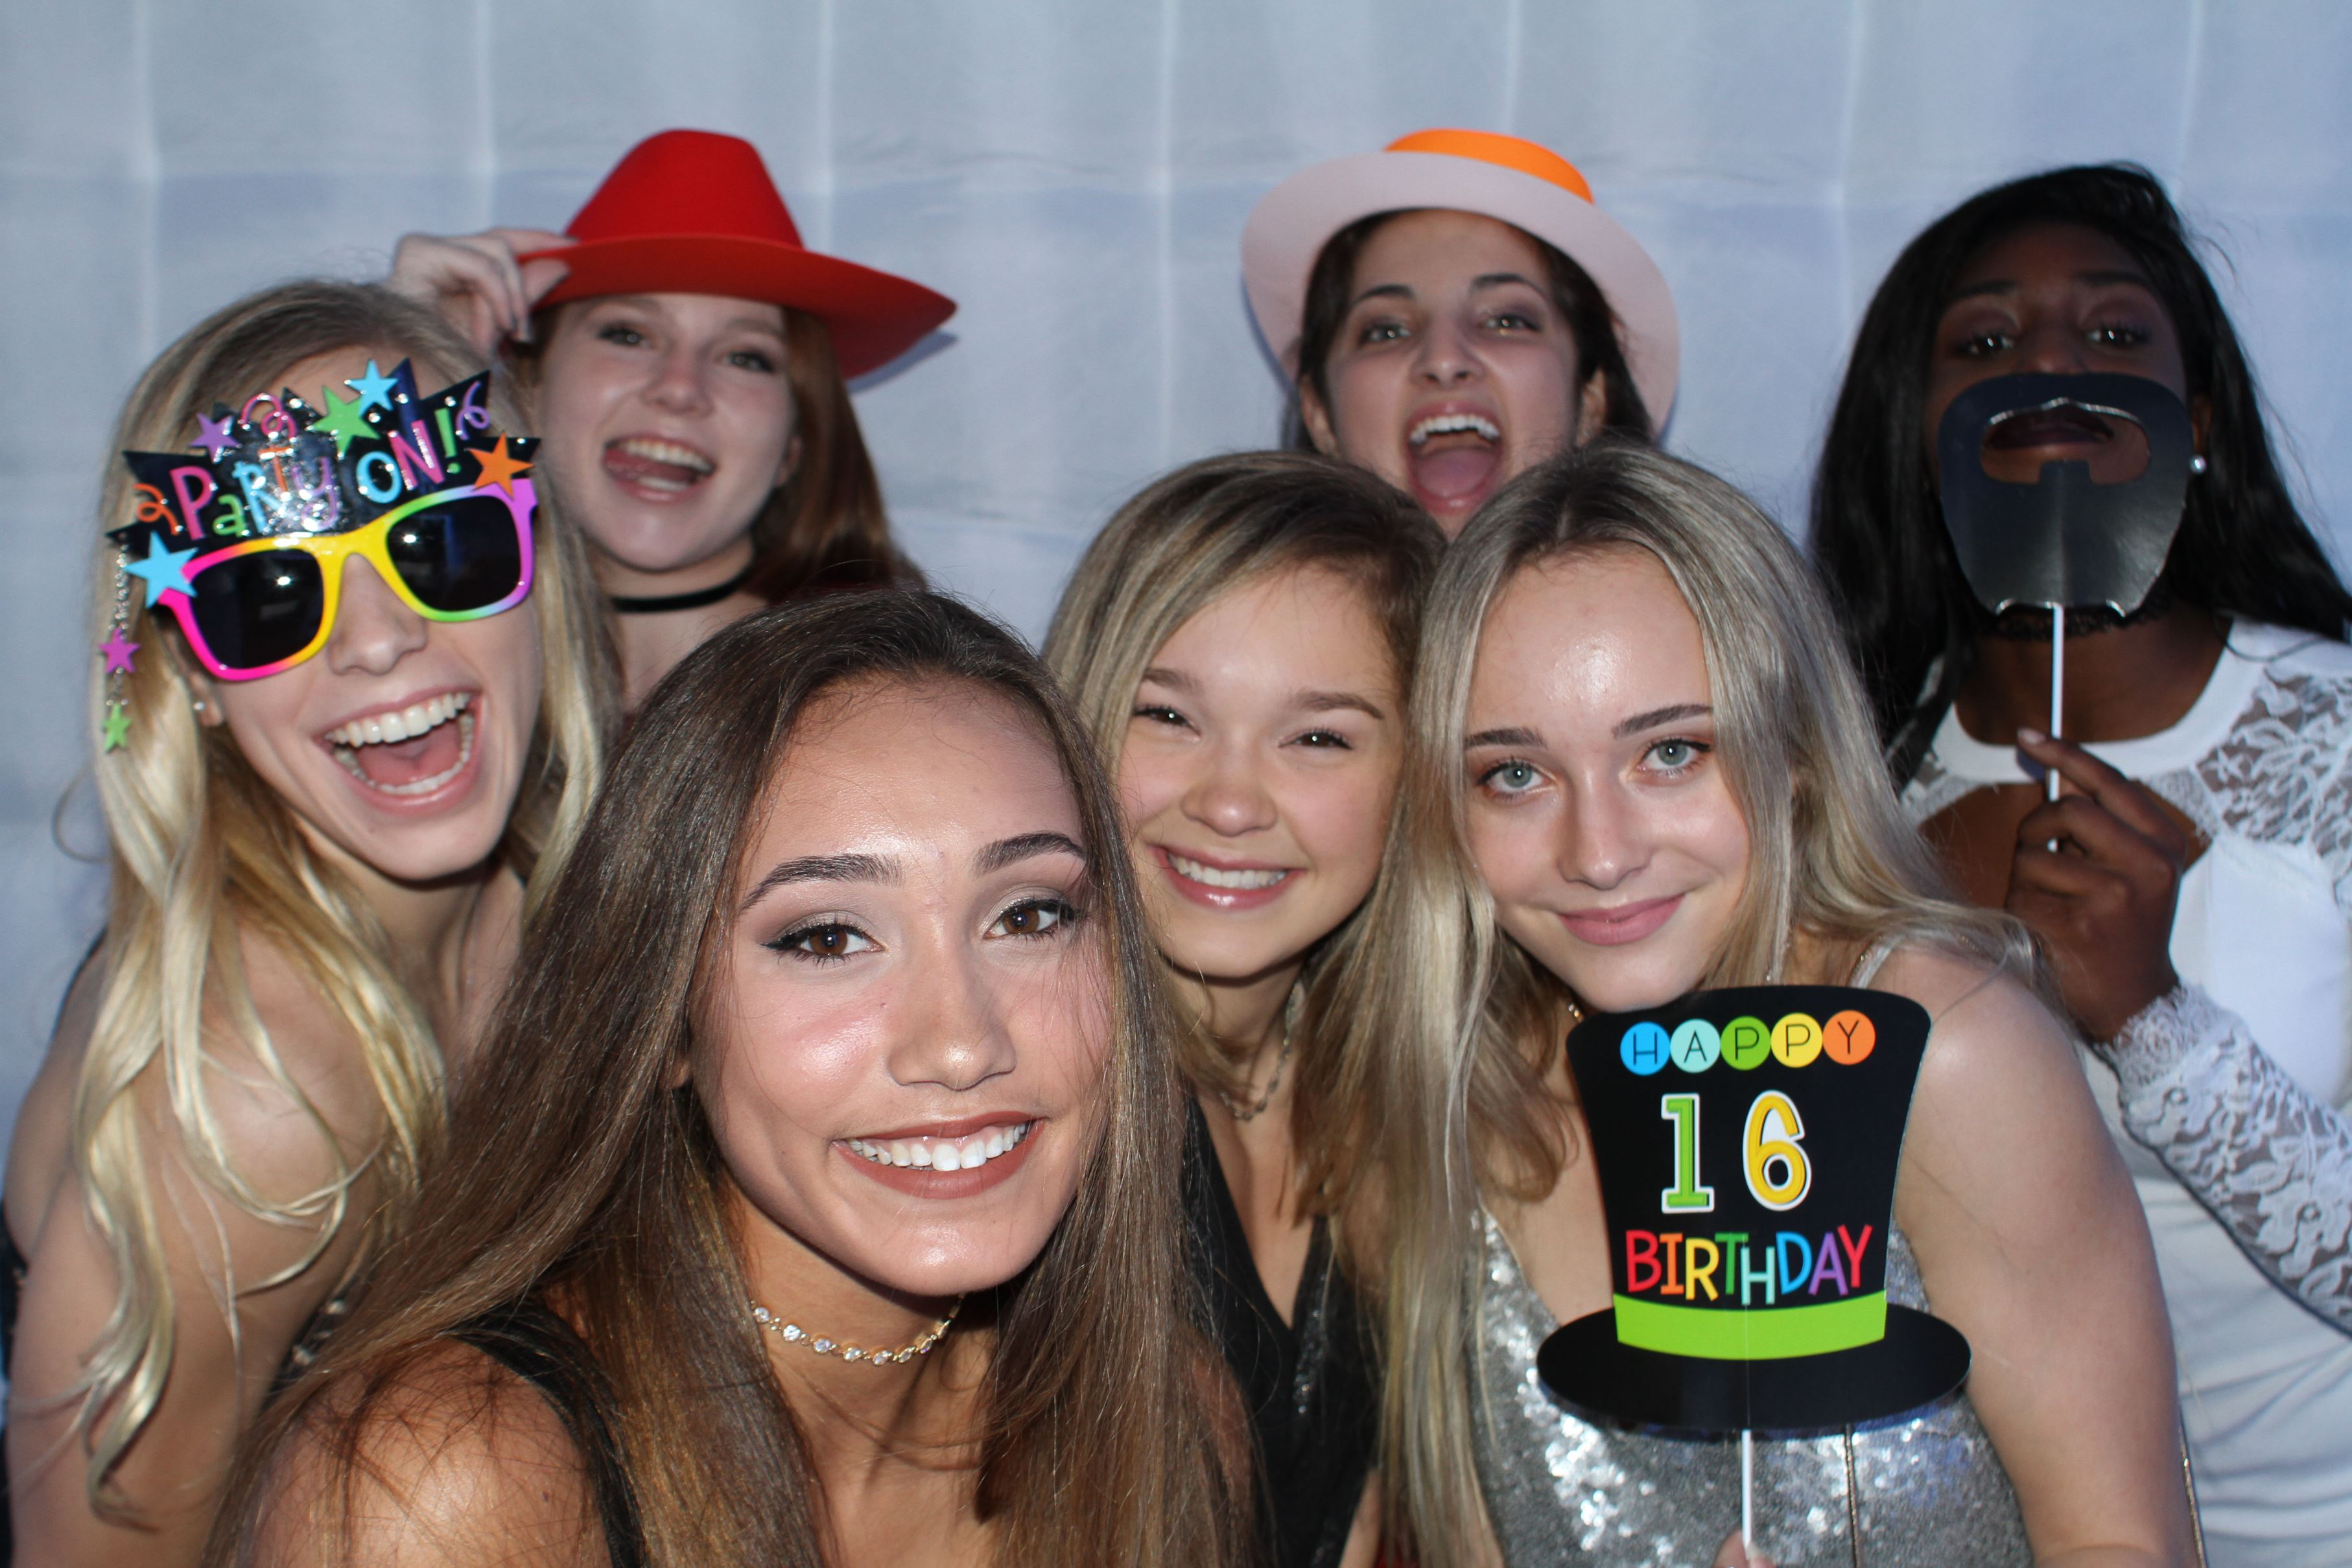 Brittany Sweet 16